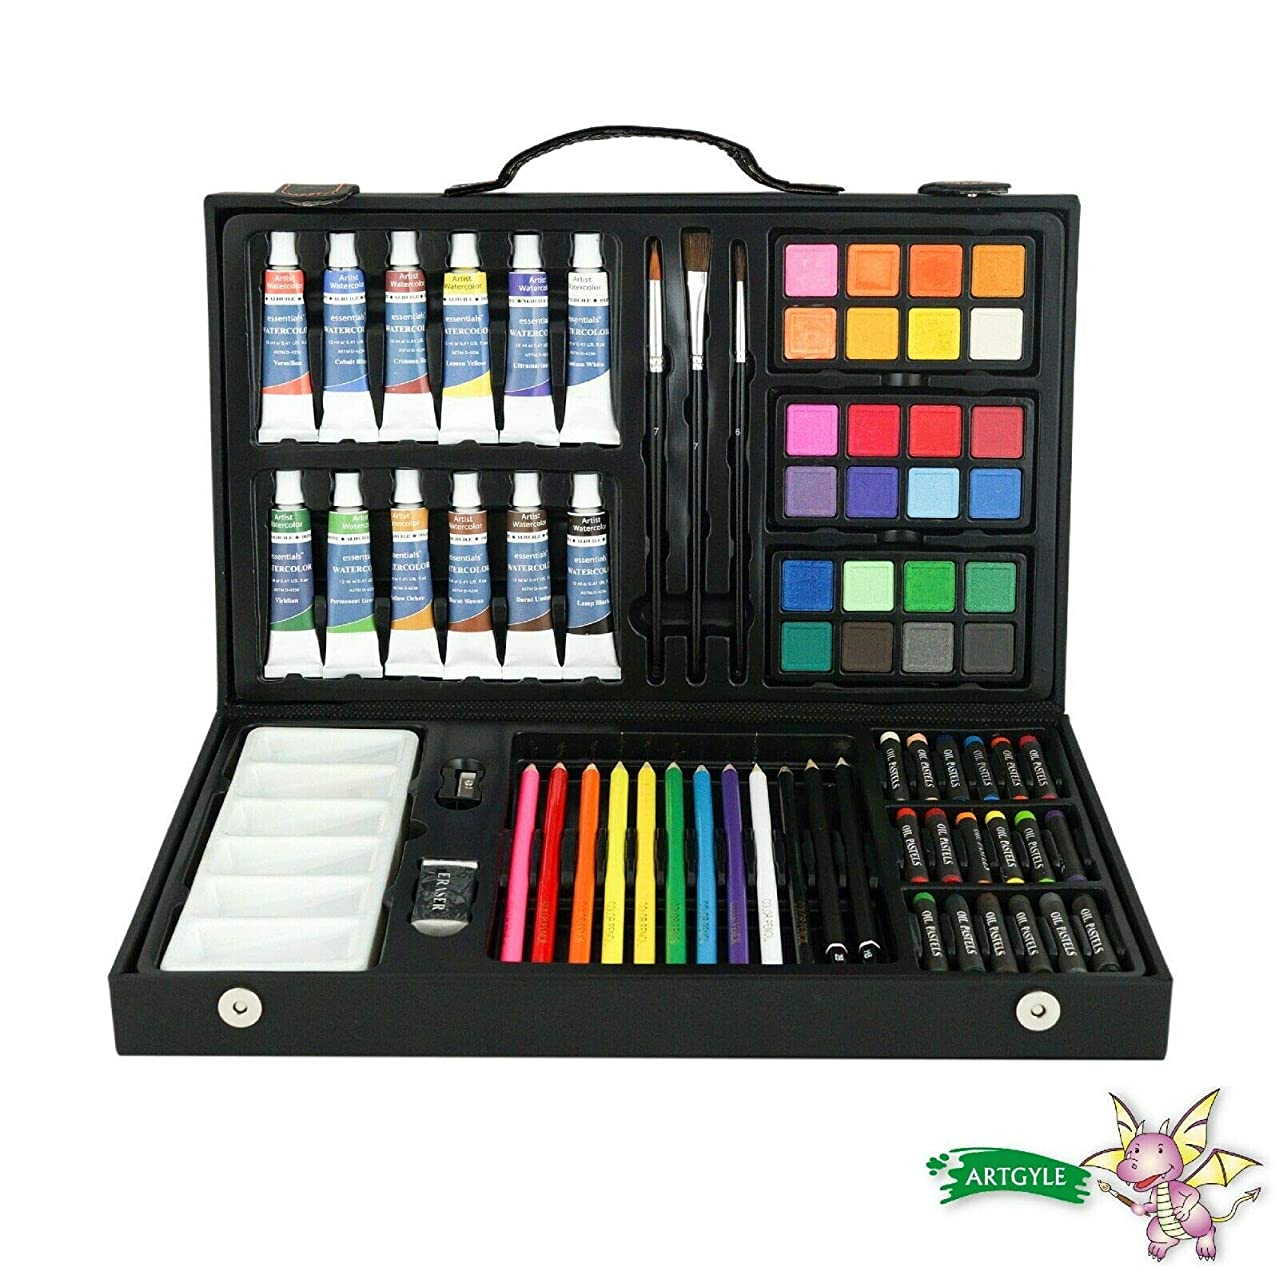 ARTGYLE 73 Piece Deluxe Mixed Media Art Set in PU Box, with Watercolor Cakes, Oil Pastels, Colored Pencils, Watercolor Paint Tubes, Sketching Pencils and Tools